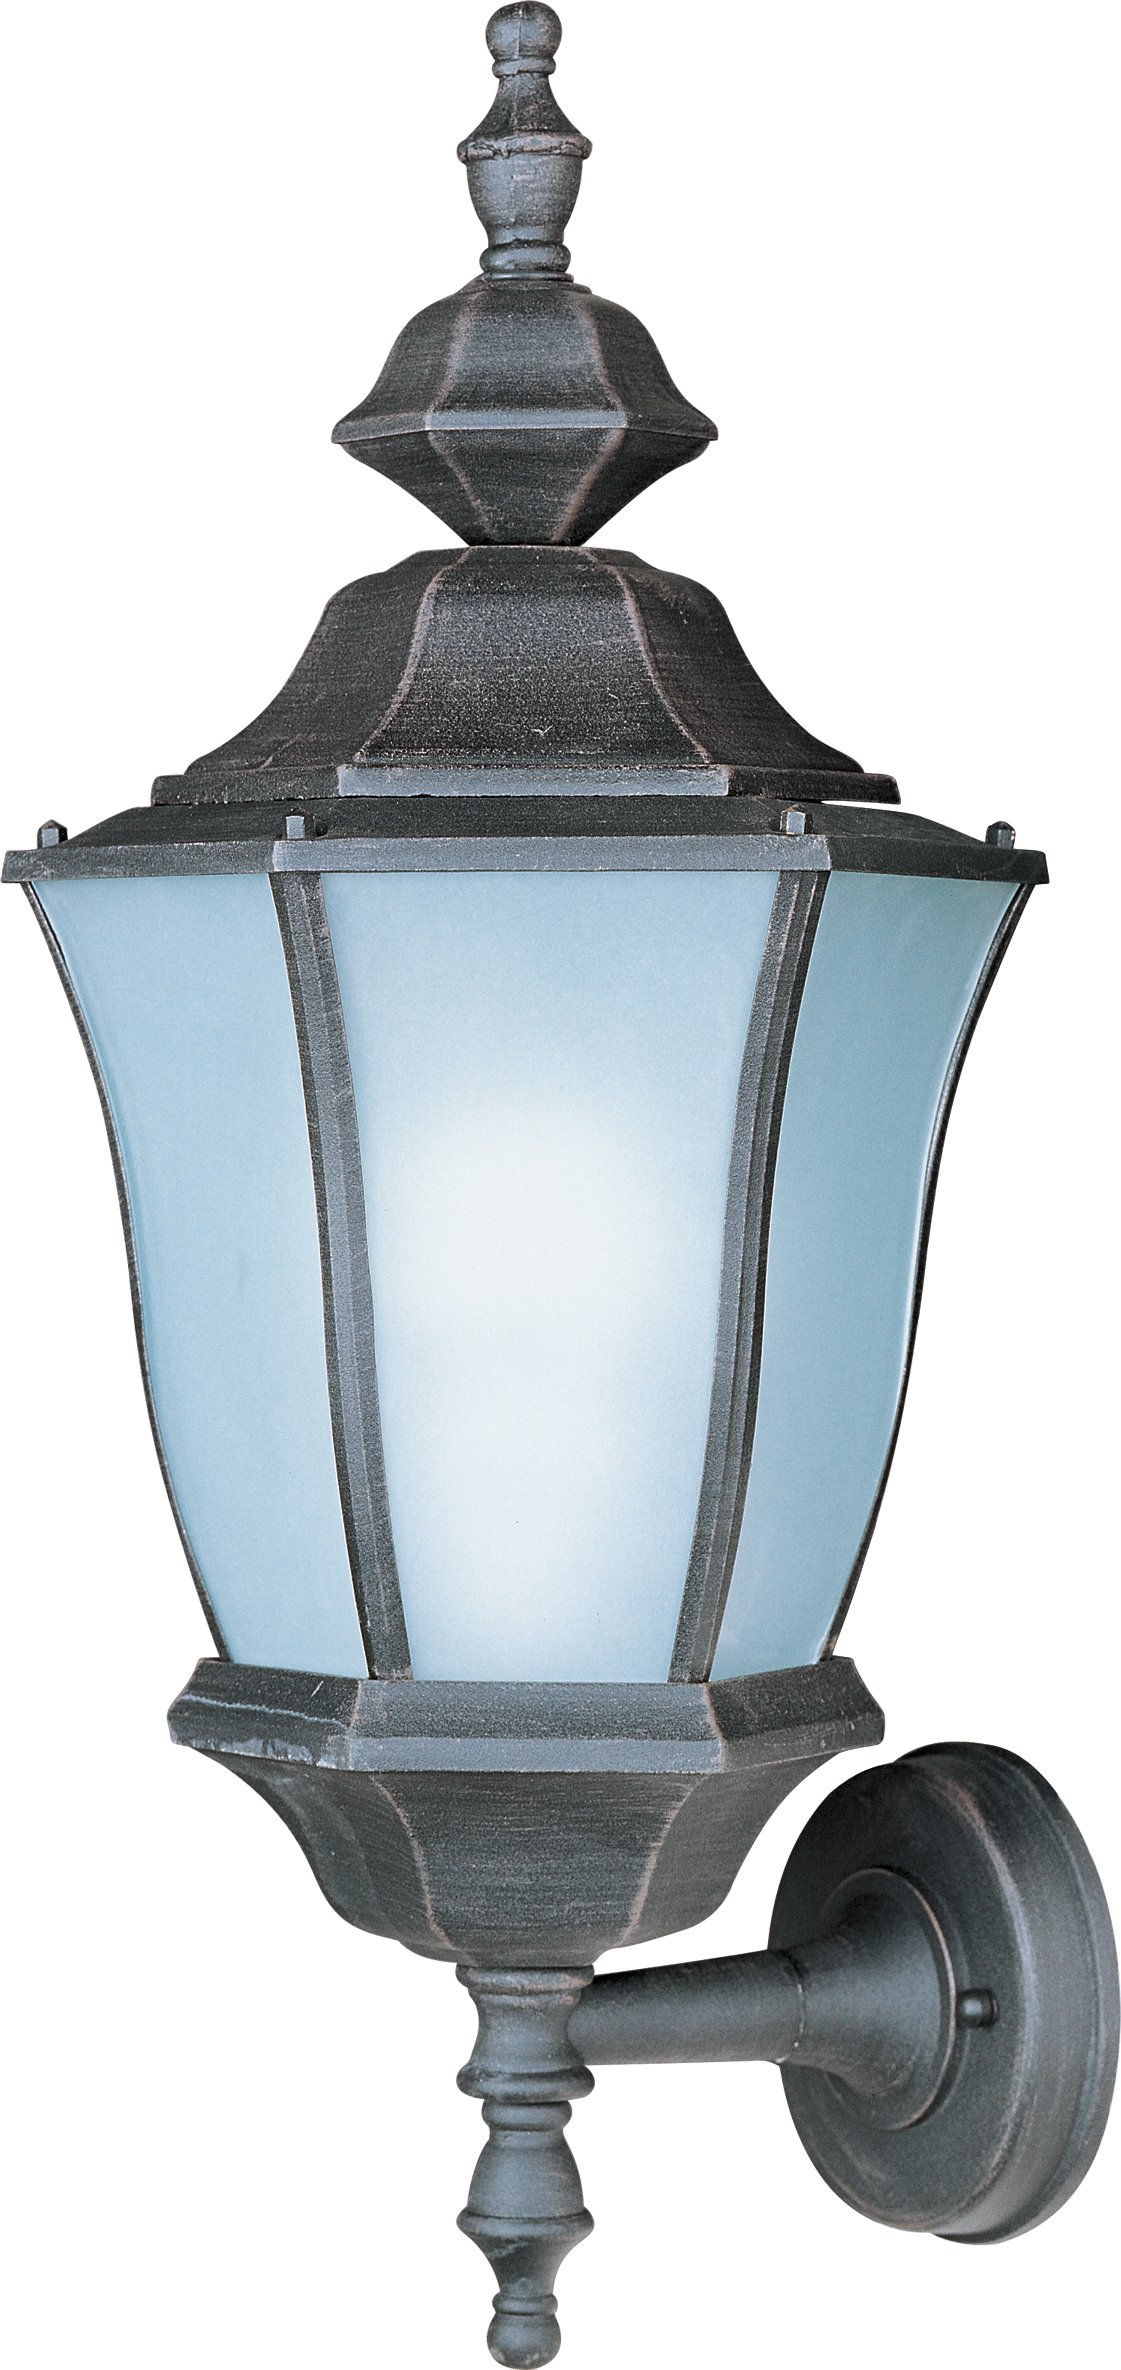 Maxim 85044RP Madrona EE 1-Light Outdoor Wall Lantern, Rust Patina Finish, Glass, GU24 Fluorescent Bulb , 40W Max., Wet Safety Rating, Standard Dimmable, Glass Shade Material, 1152 Rated Lumens